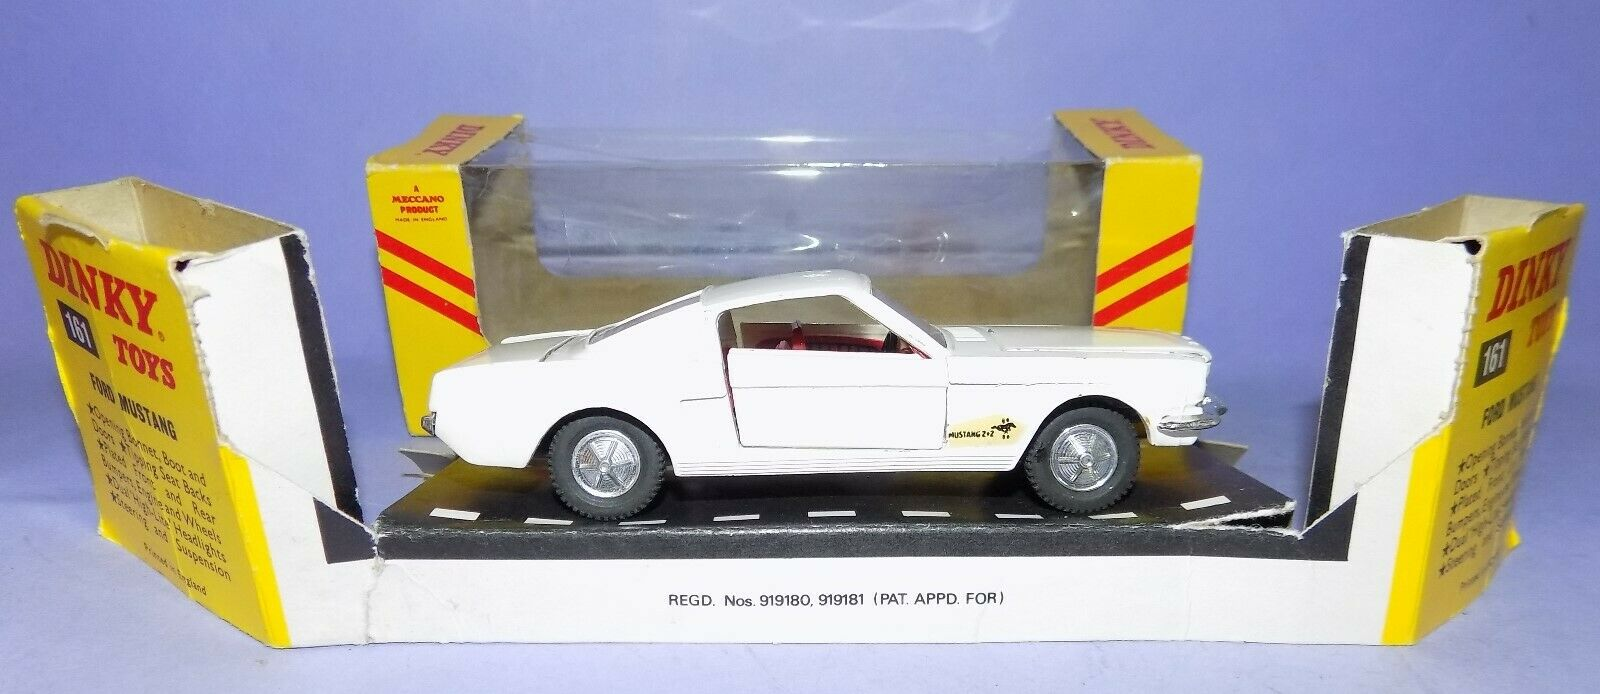 1965-1973  DINKY SpielzeugS NO 161  FORD MUSTANG FASTBACK  IN ITS ORIGINAL BOX